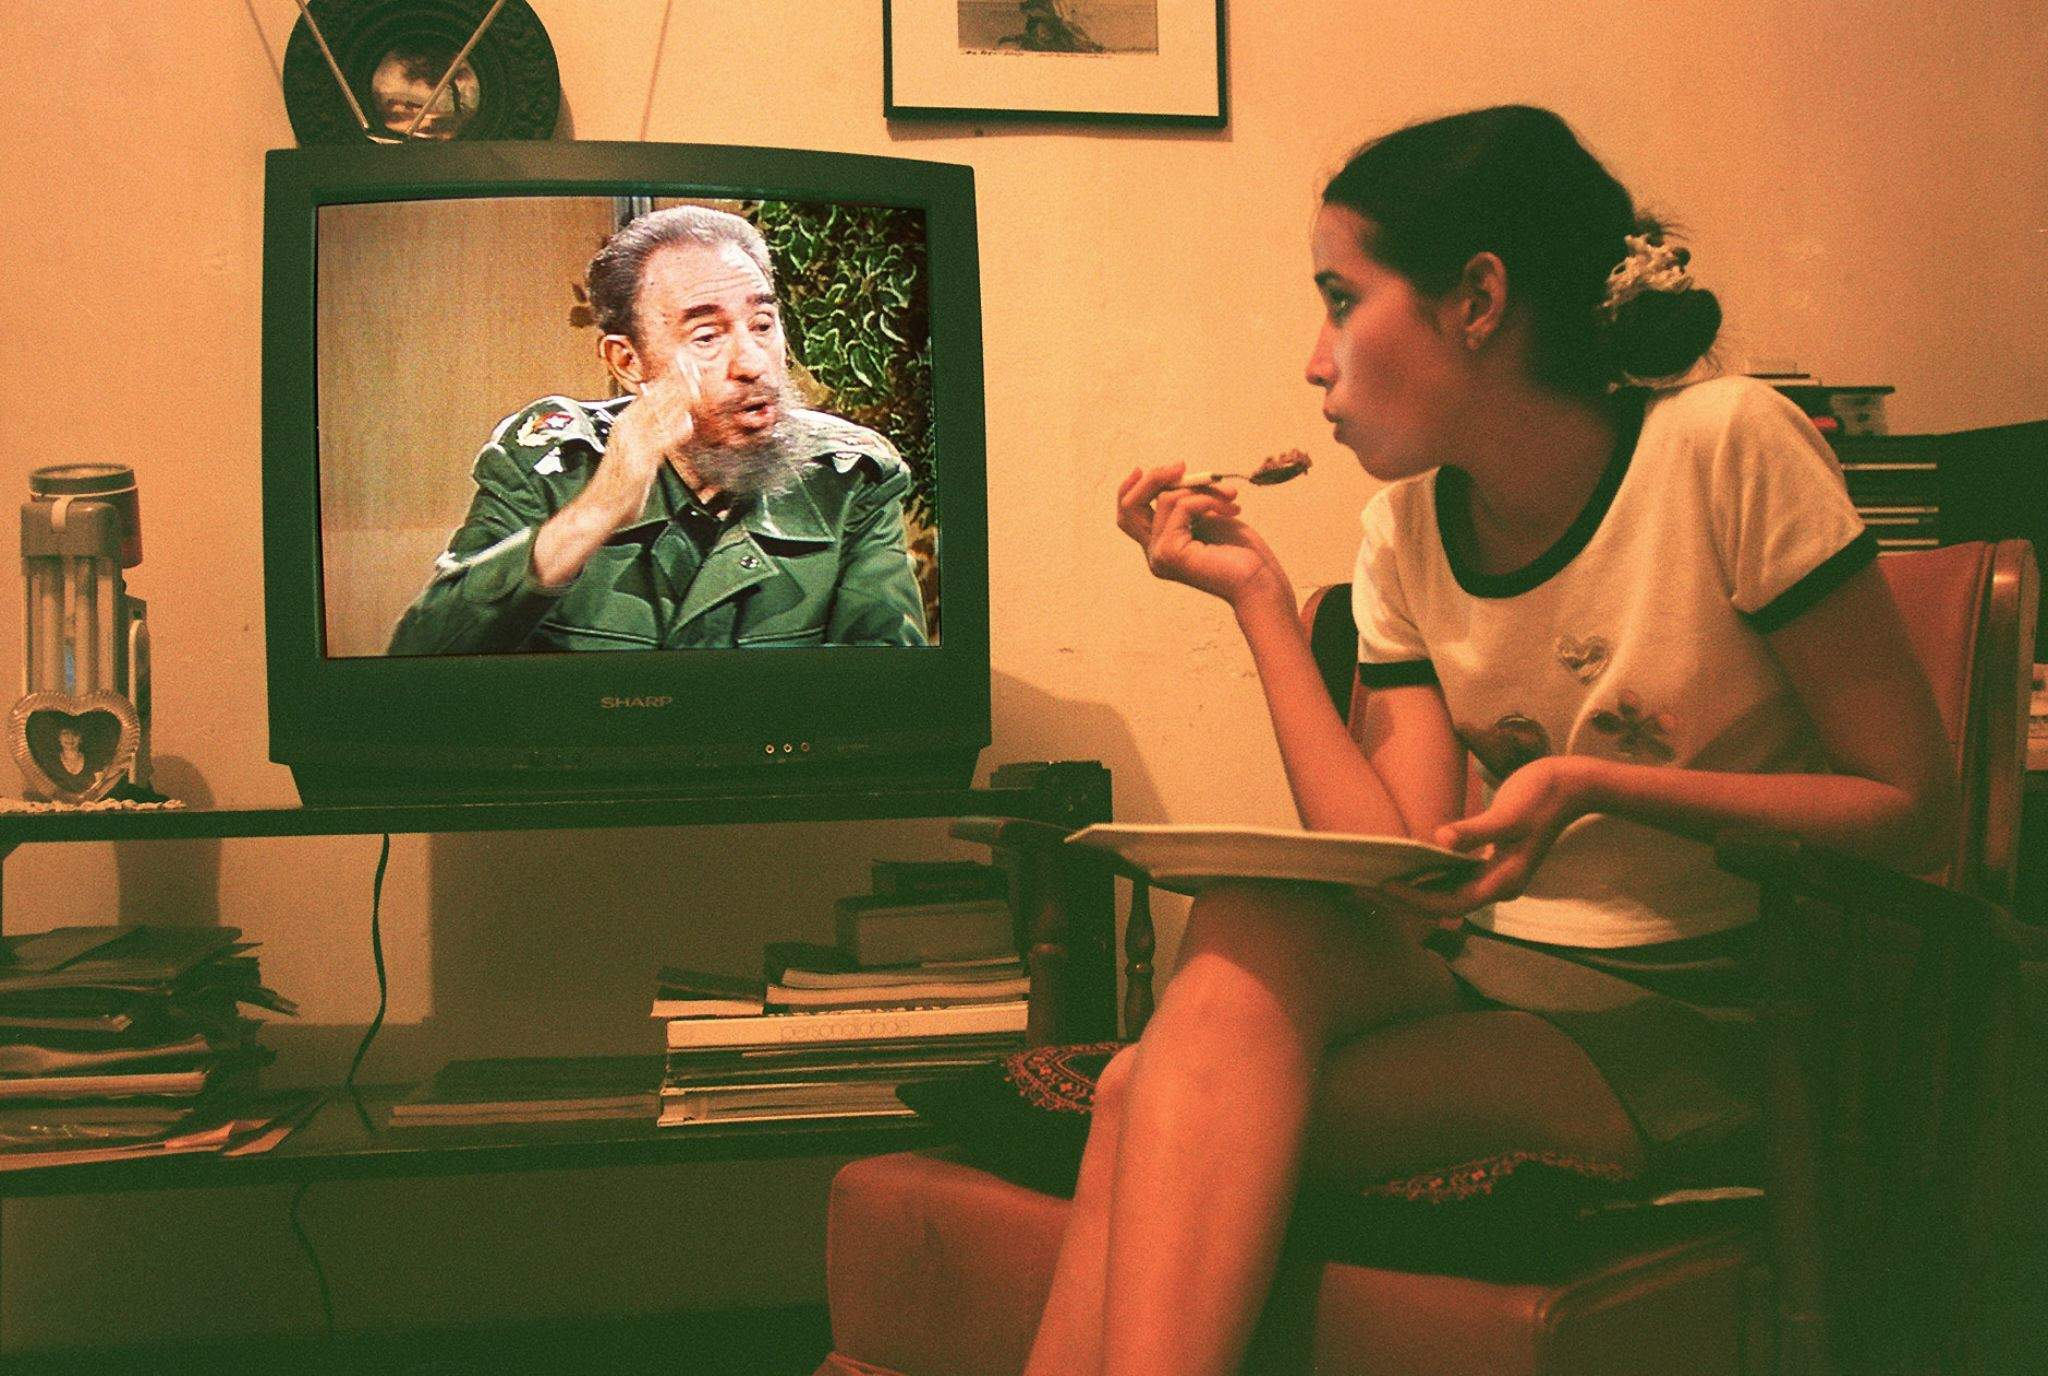 Only those who spoke to Fidel Castro can understand just how glamorous he was